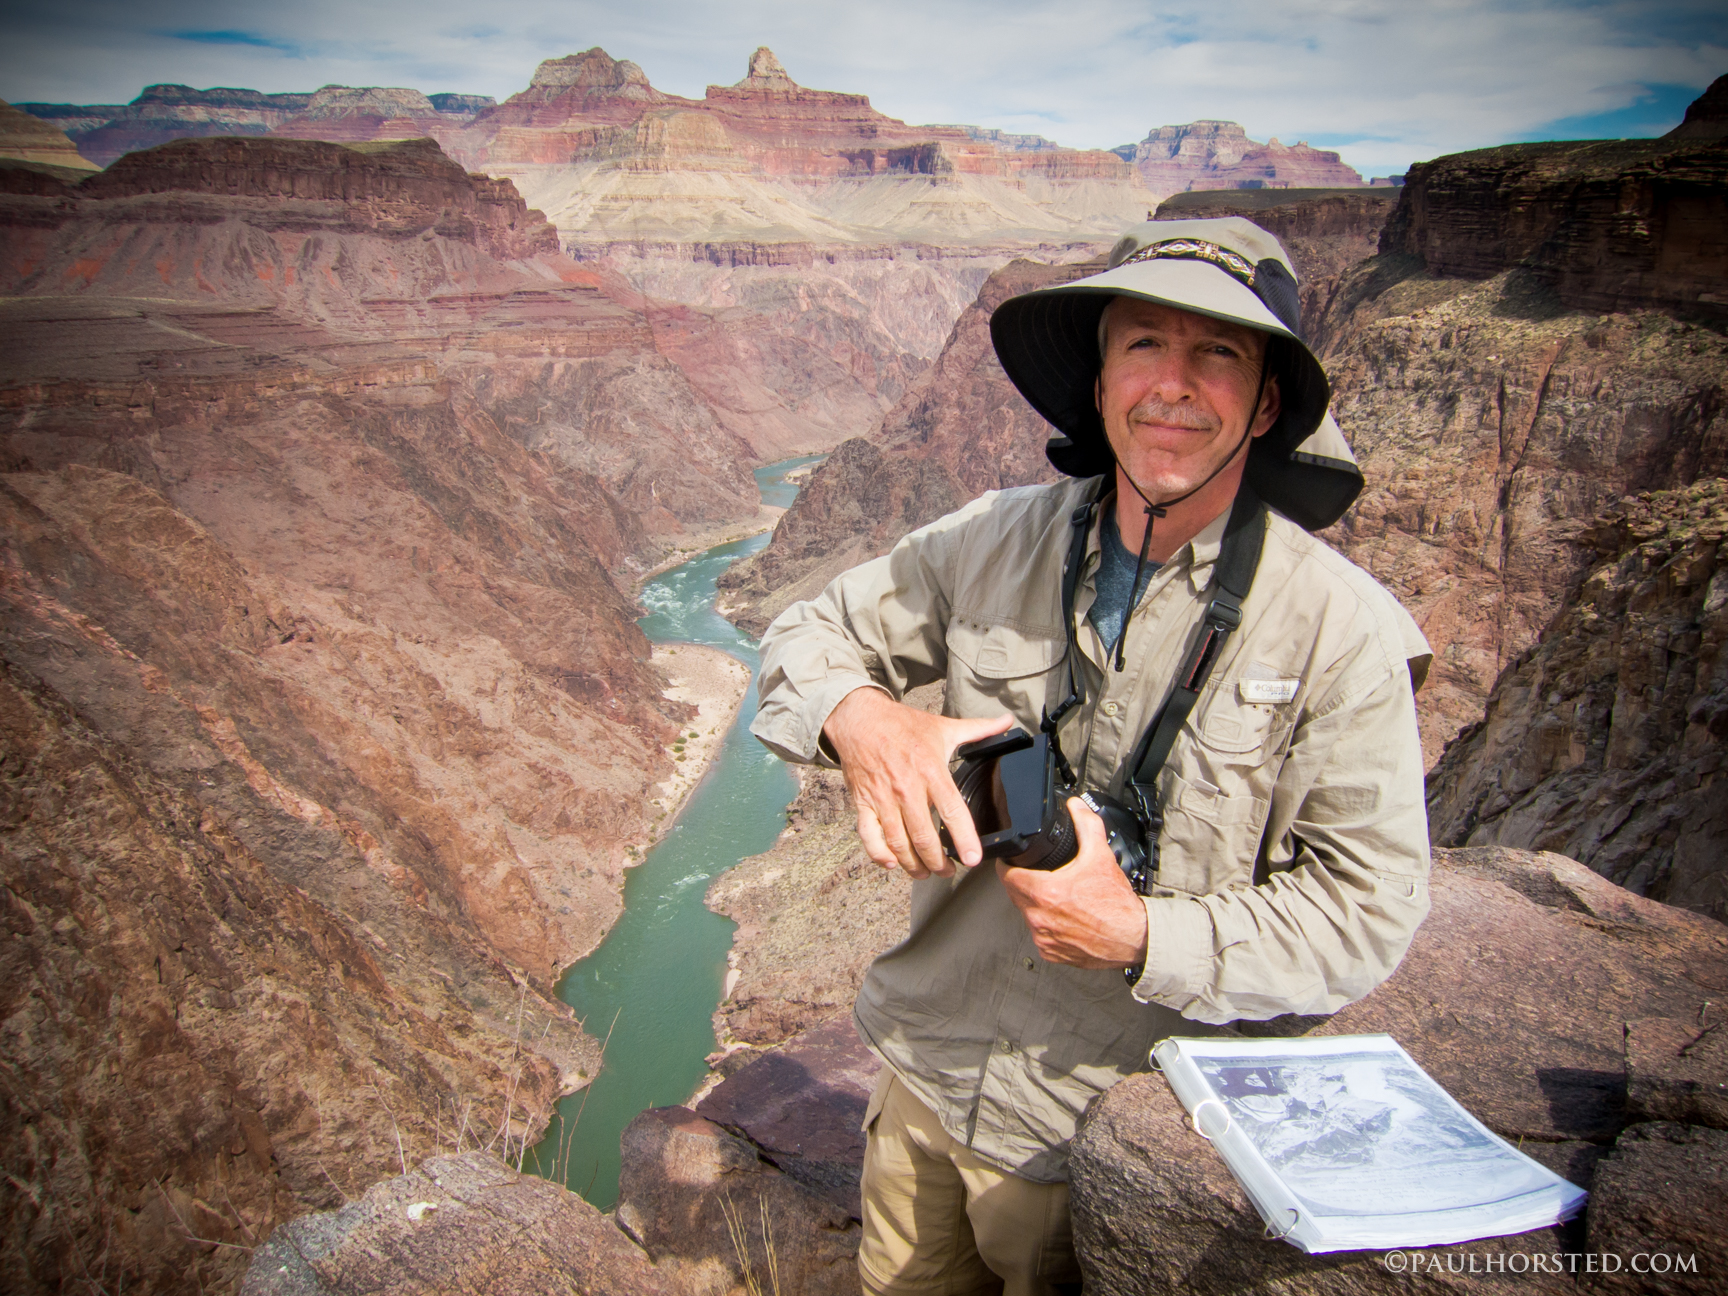 Paul Horsted at historic photo site in Grand Canyon